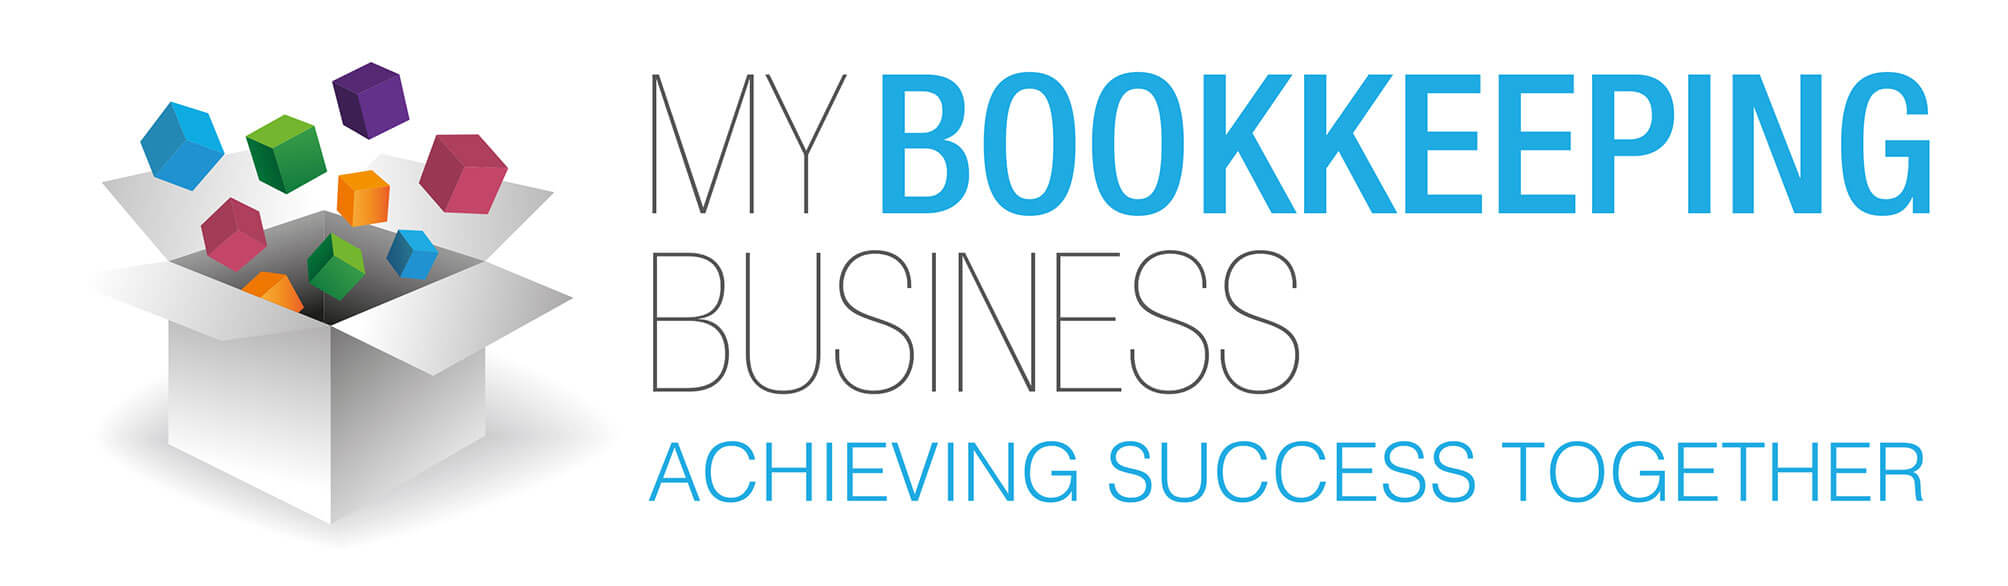 My Bookkeeping Business